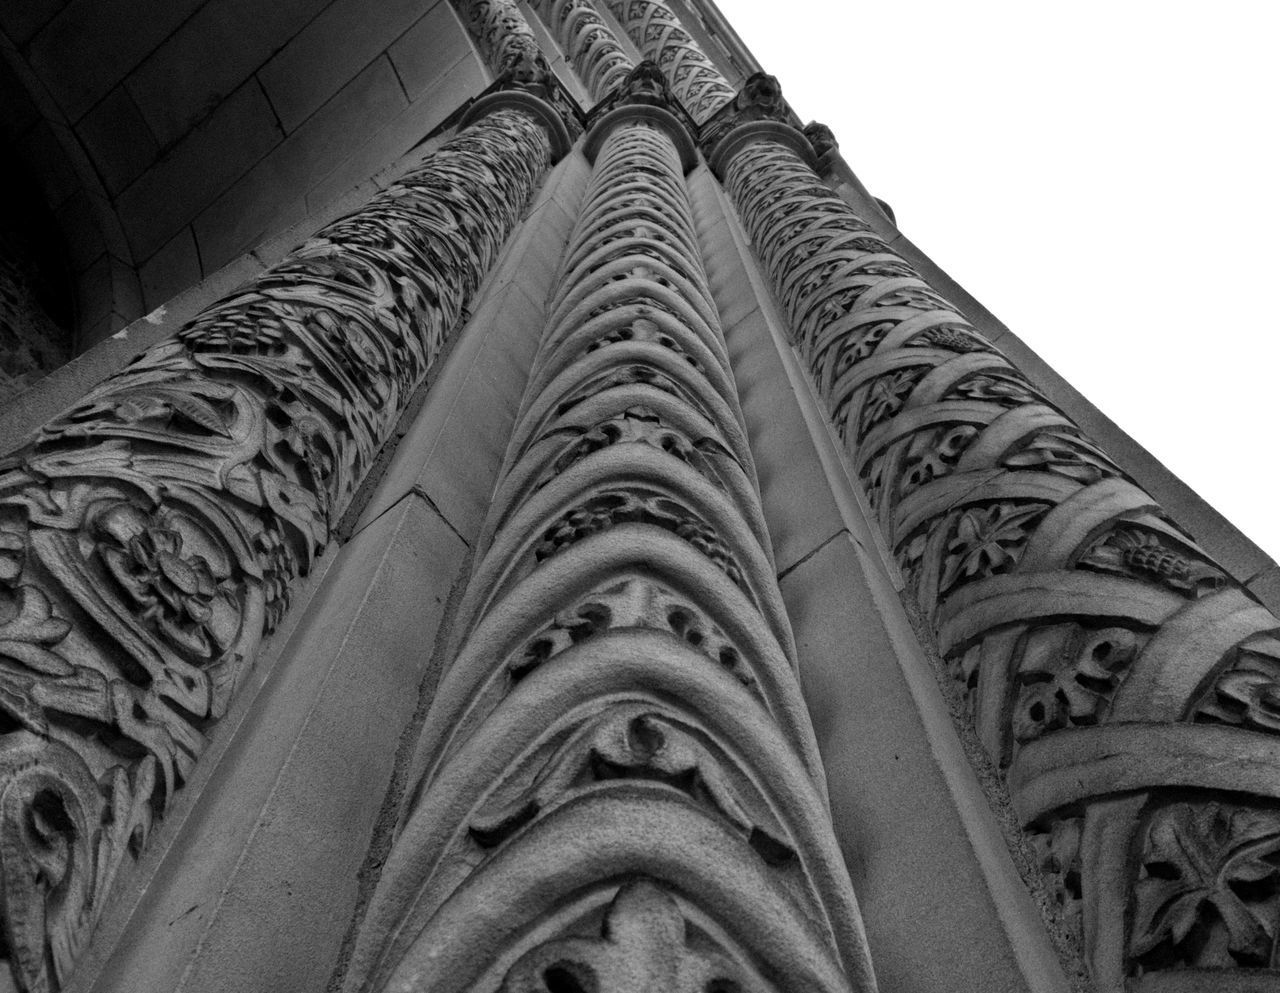 no people, low angle view, architecture, pattern, built structure, indoors, close-up, history, day, the past, design, sky, in a row, building, clear sky, creativity, metal, wall - building feature, wheel, floral pattern, directly below